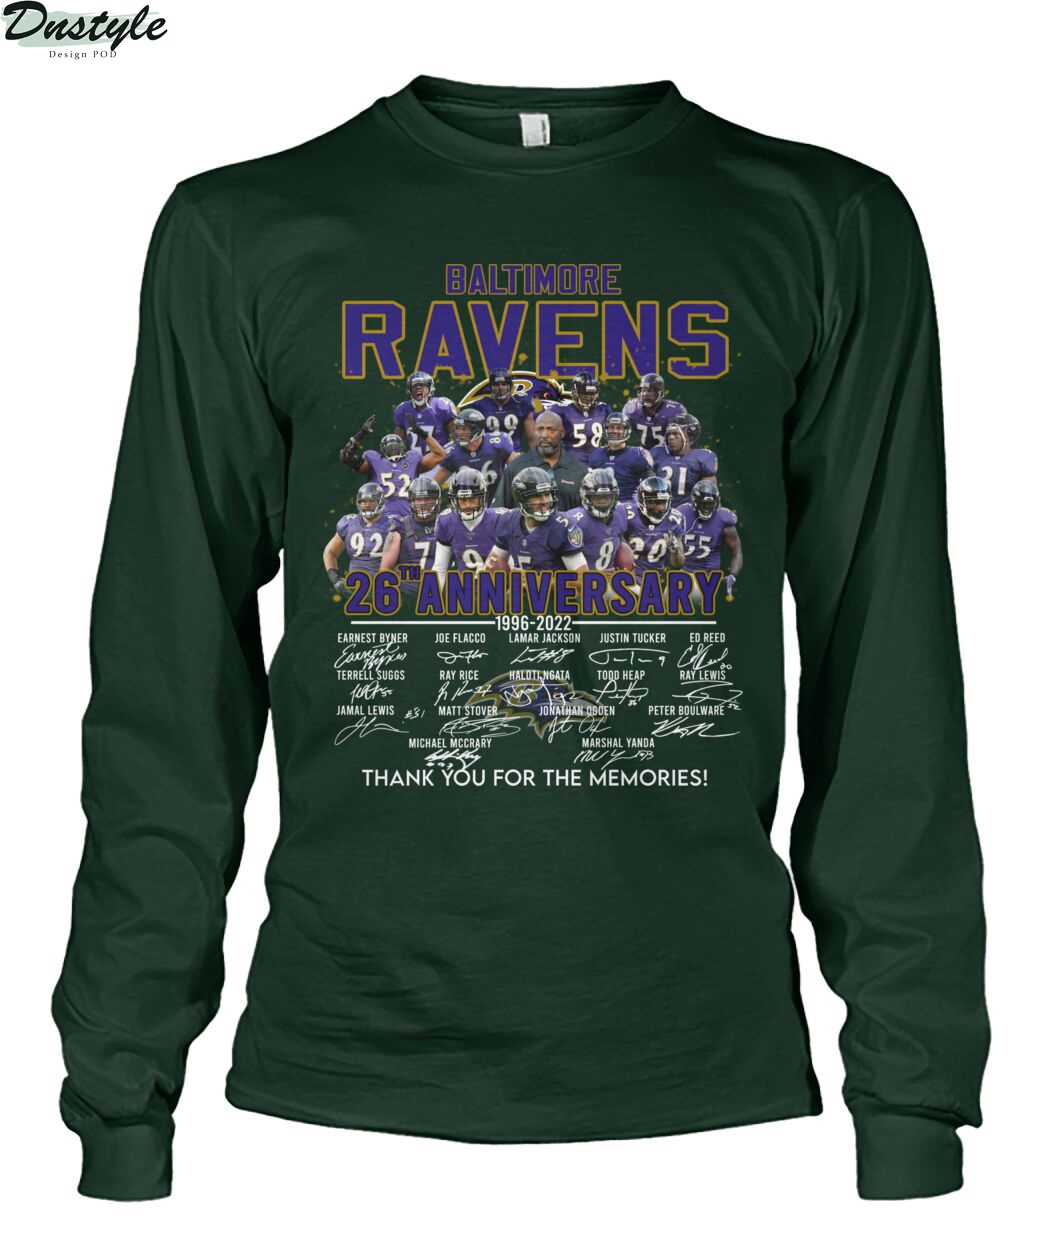 Baltimore ravens 26th anniversary thank you for the memories long sleeve